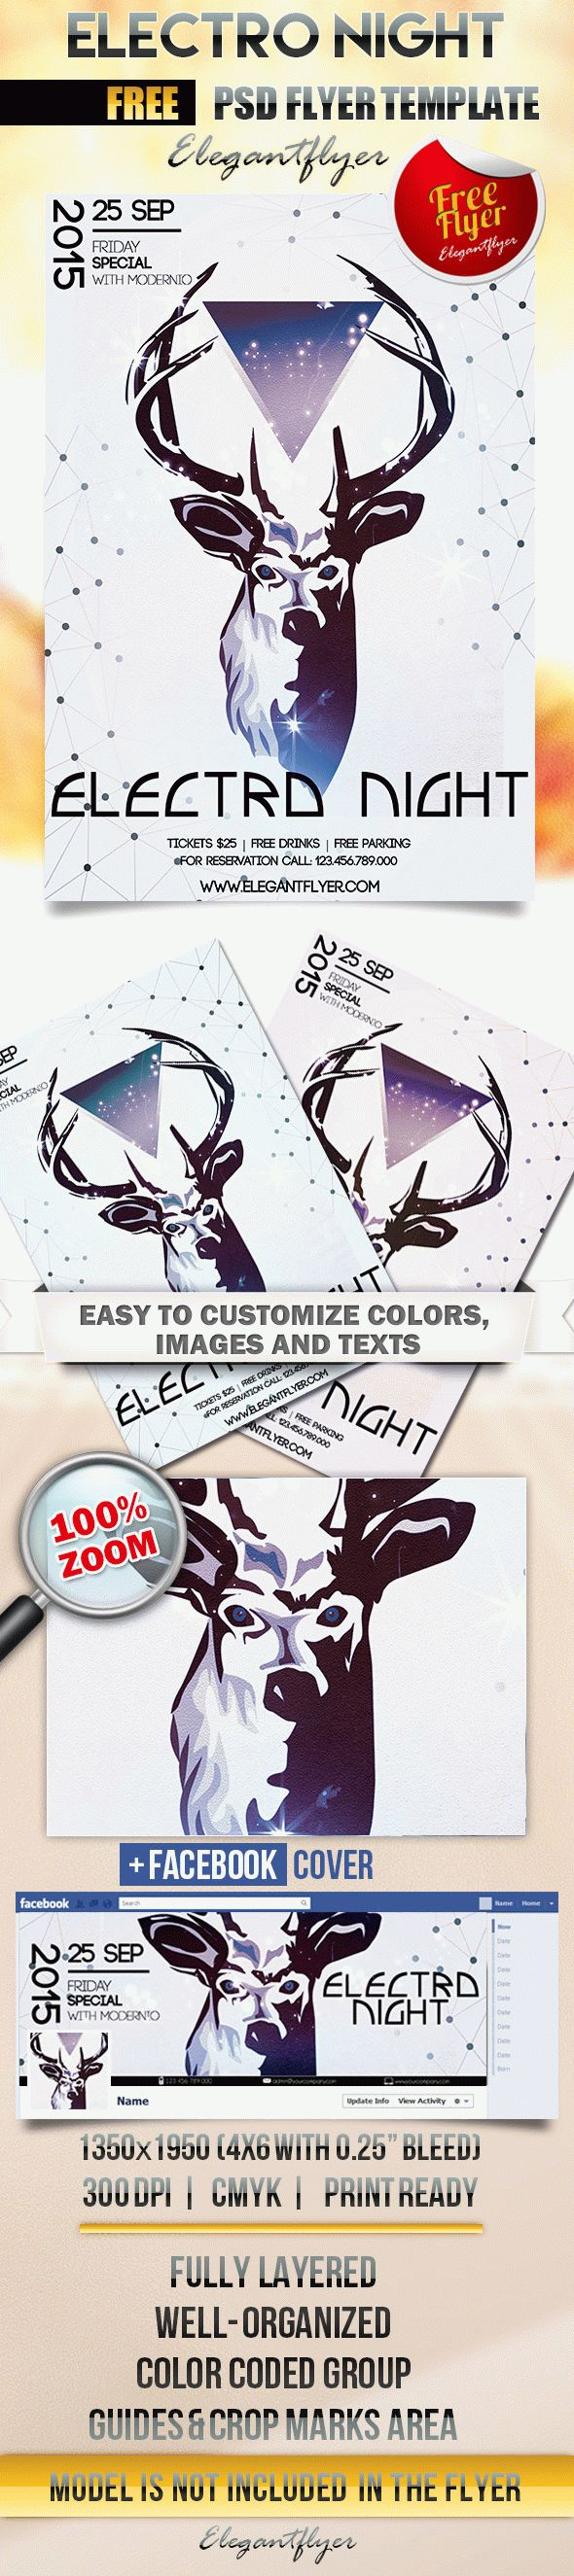 Electro Night – Free Flyer PSD Template + Facebook Cover